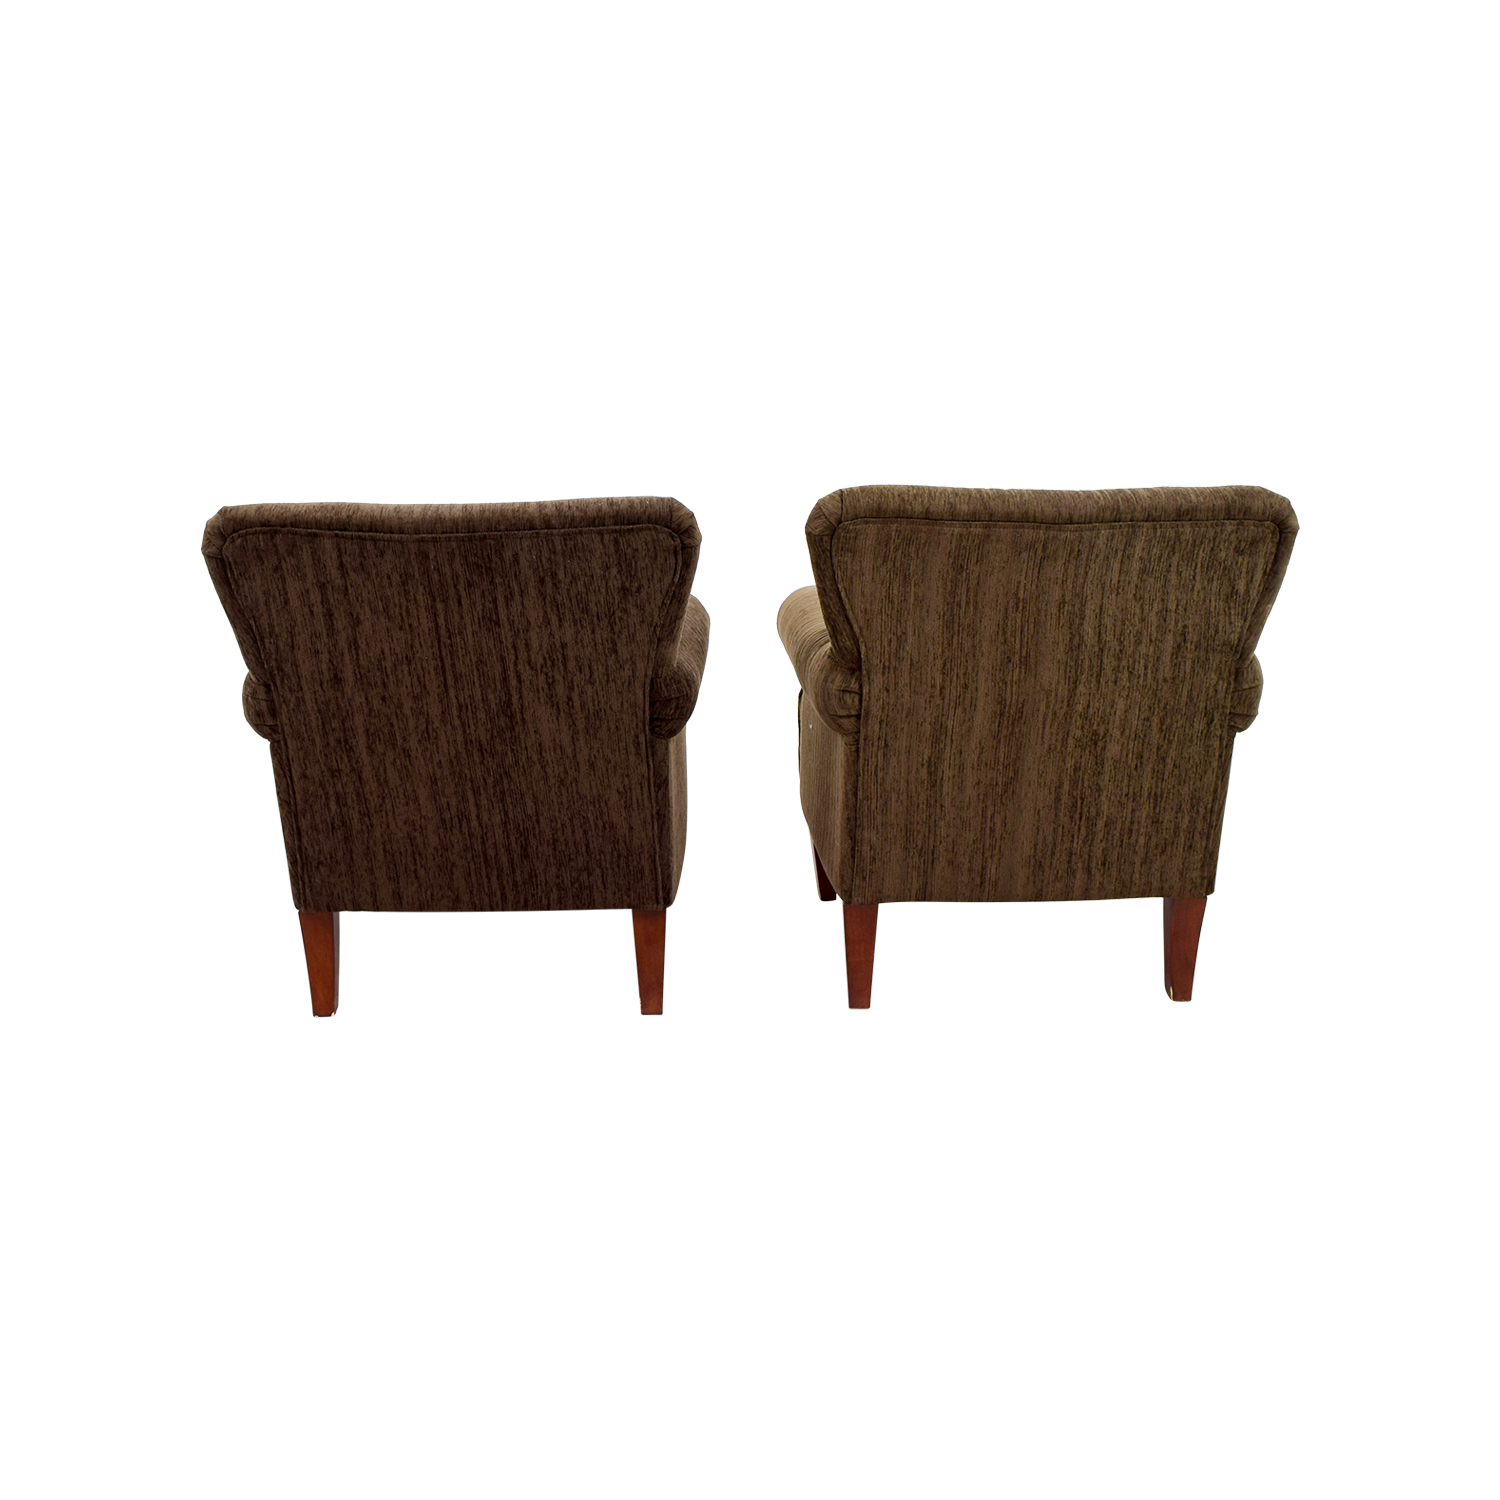 shop Emerald Home Furnishings Upholstered Brown Chairs Emerald Home Furnishings Accent Chairs